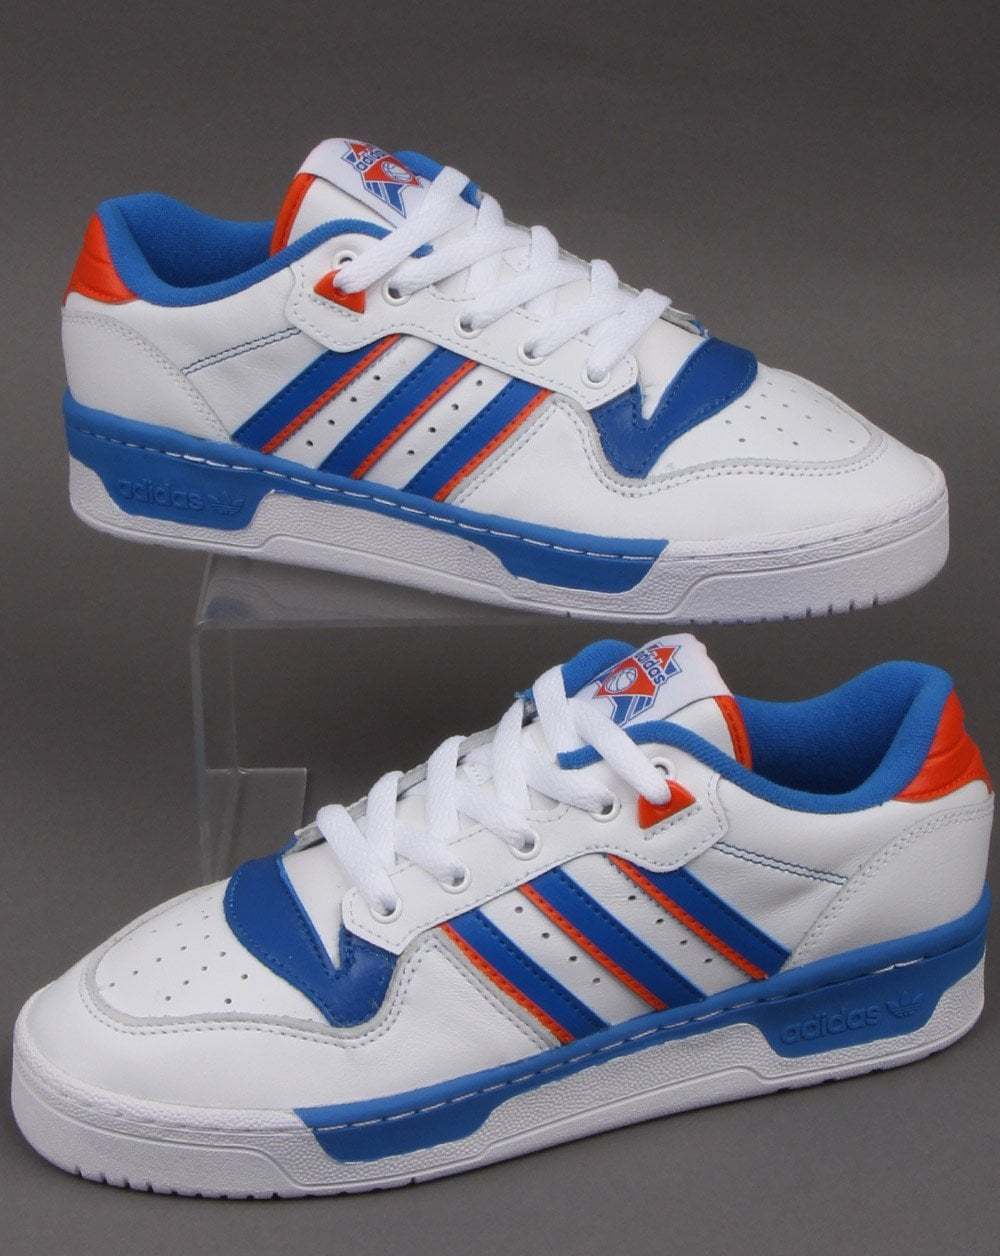 Adidas Rivalry Low Trainer White/Blue